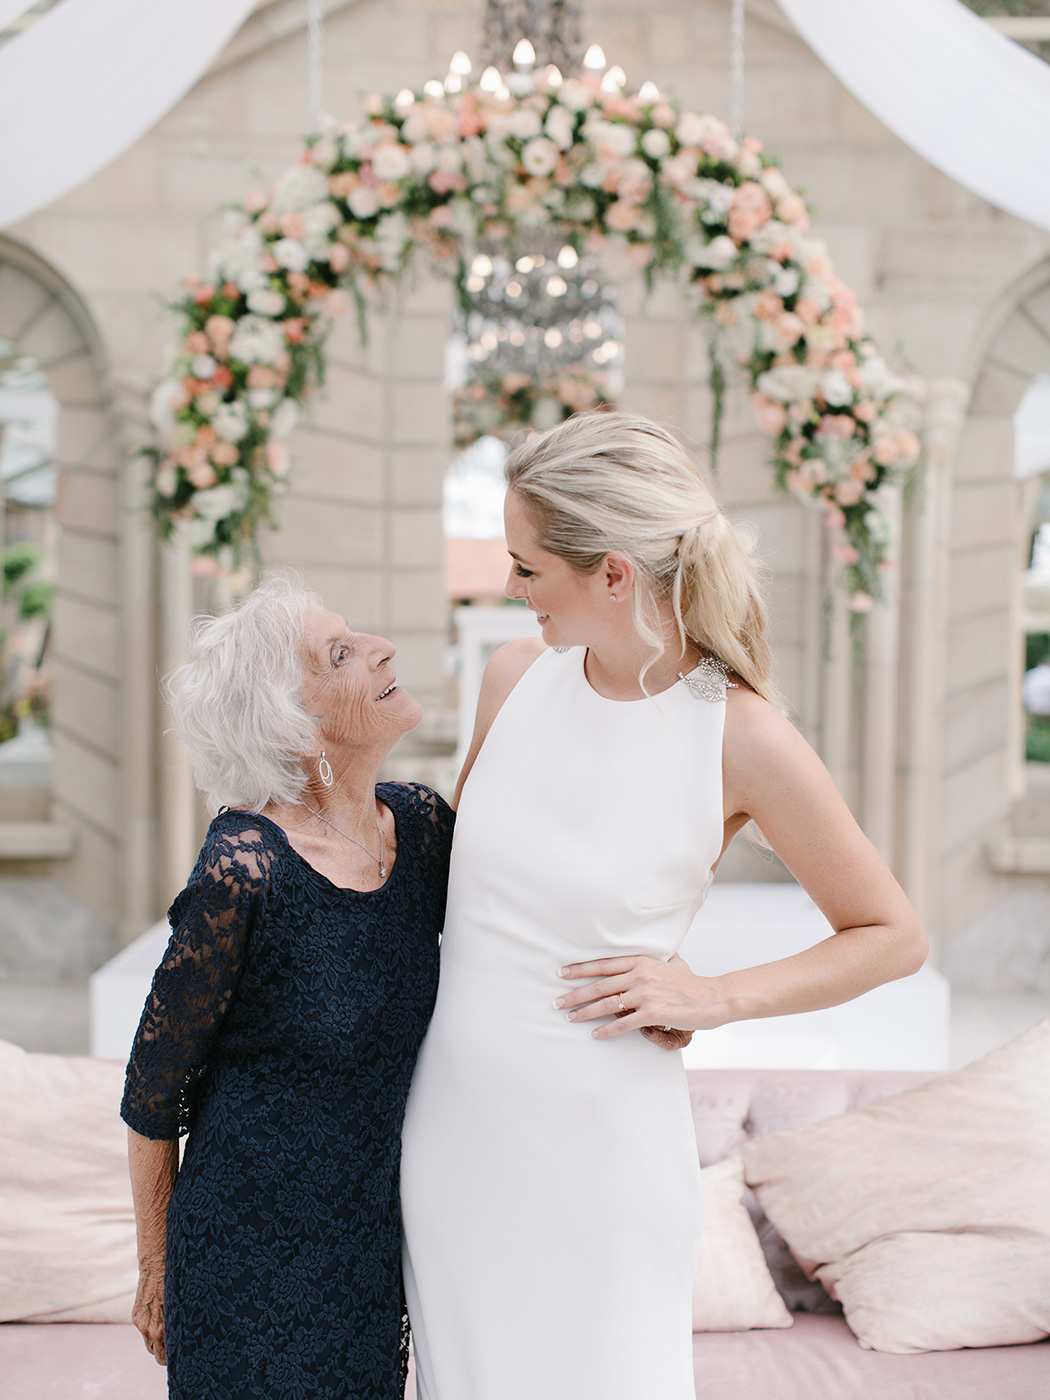 Grandma & Bride | Rensche Mari Photography